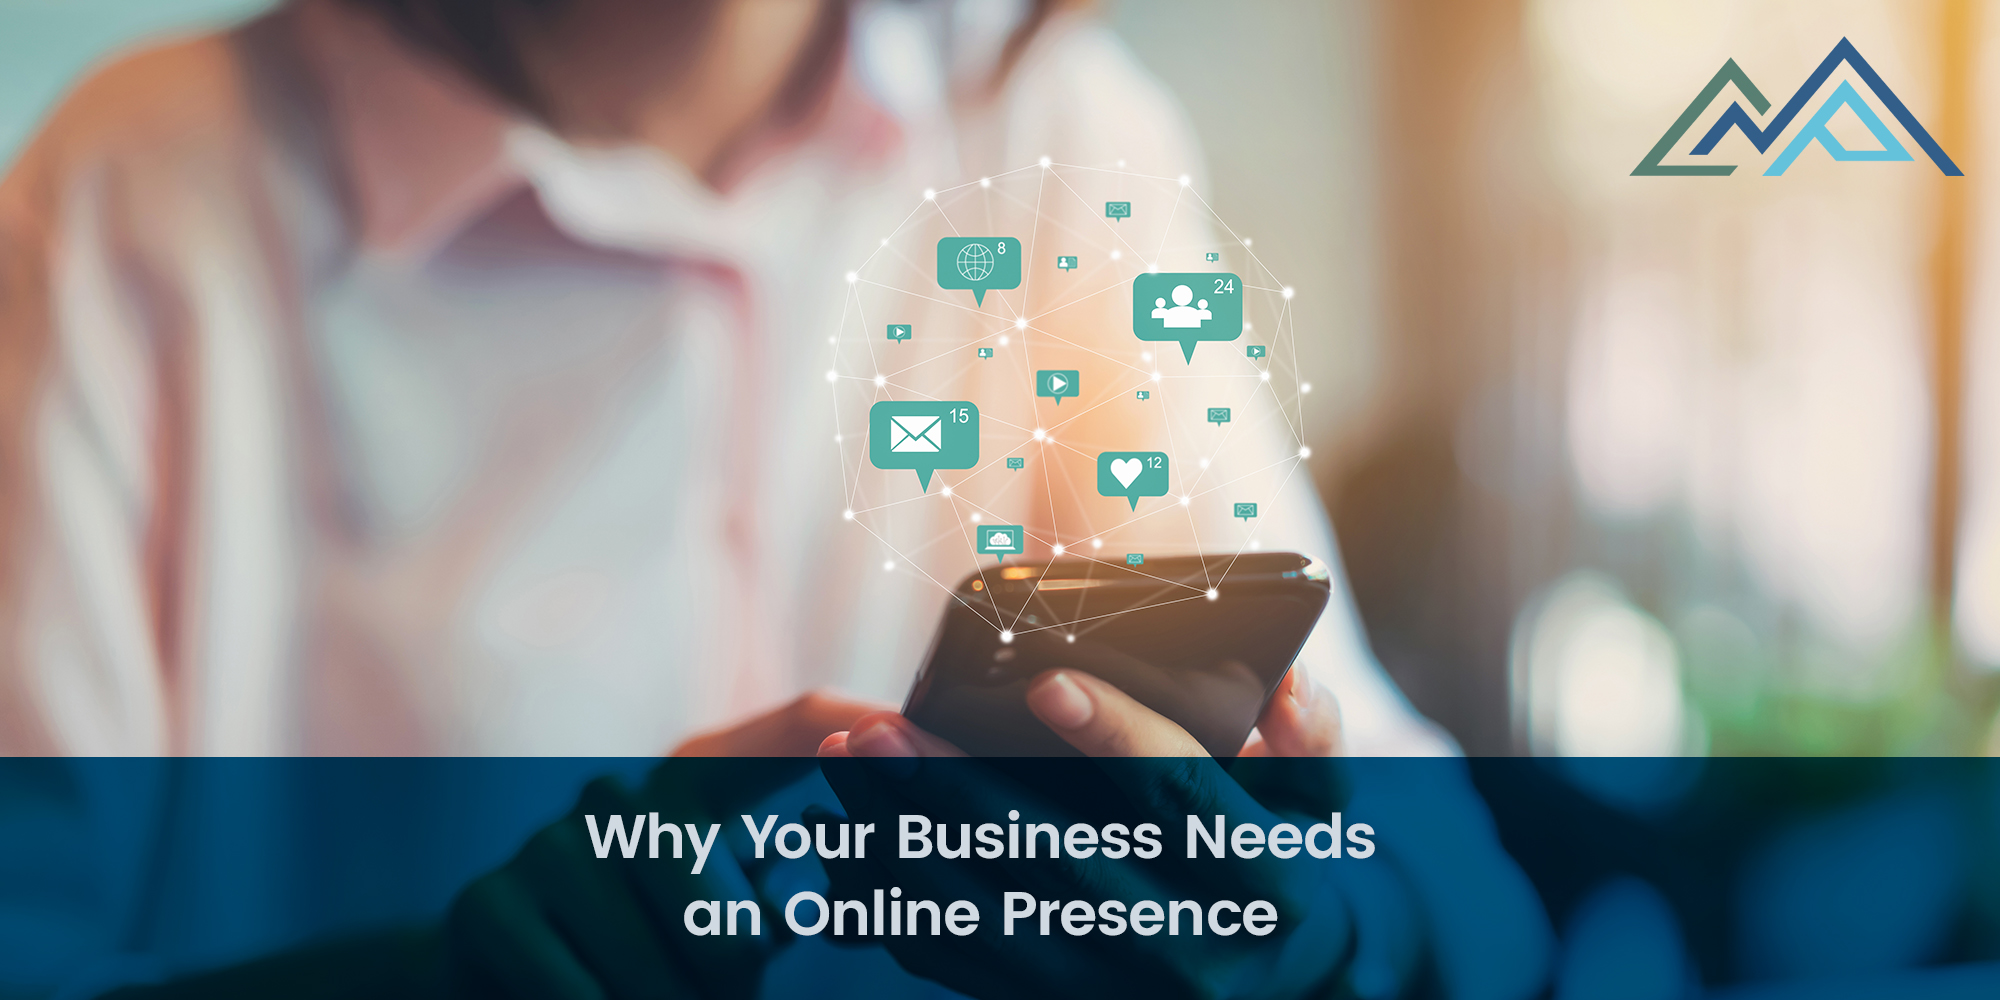 Why Your Business Needs an Online Presence - 1